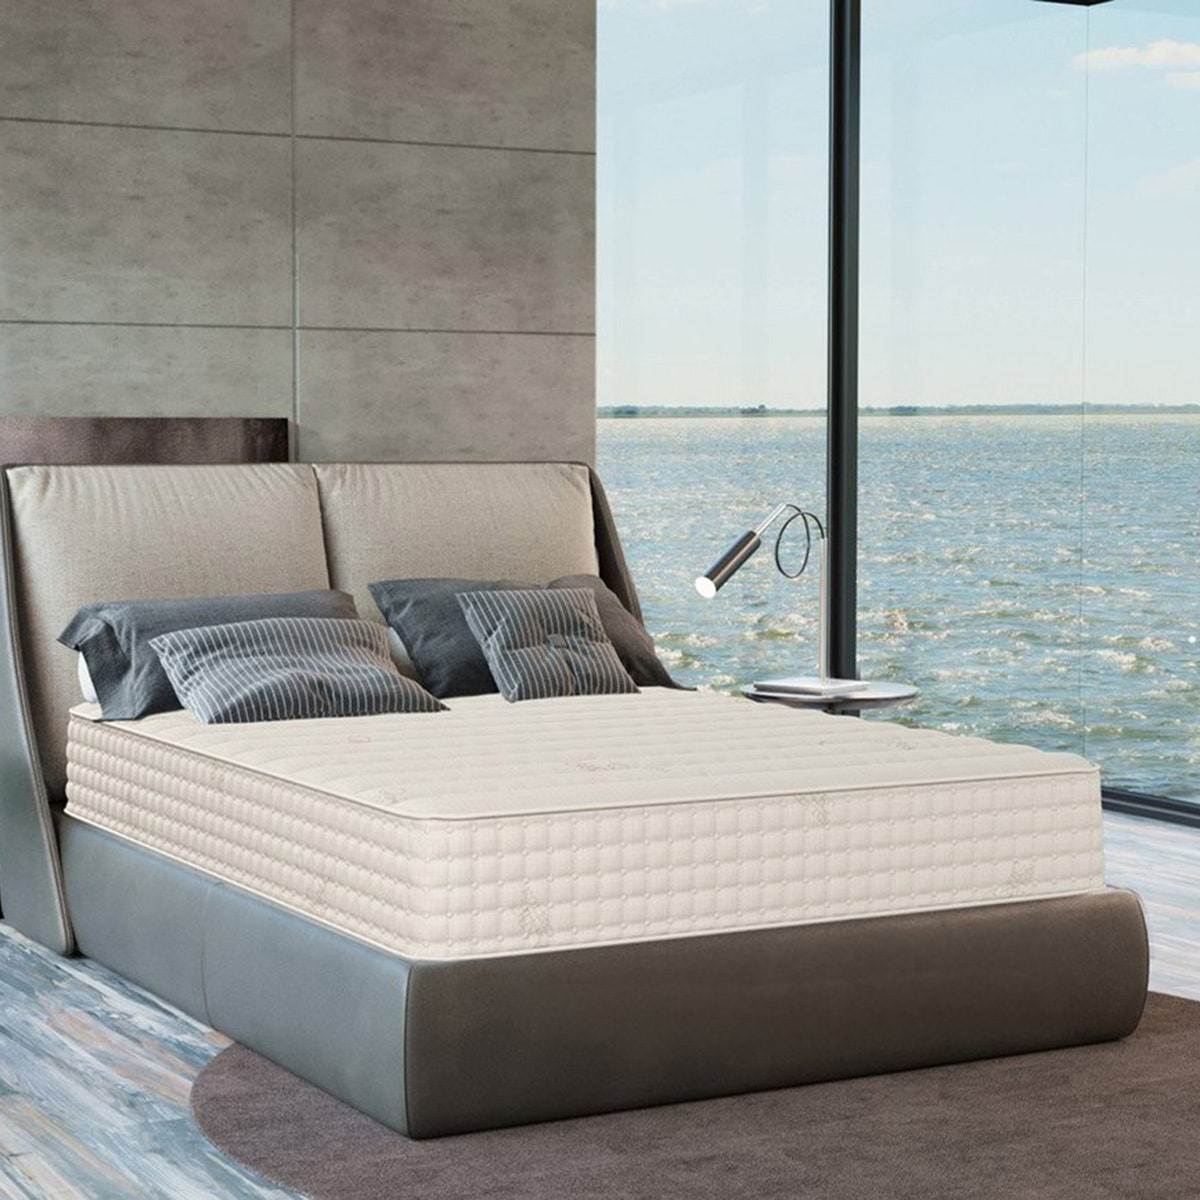 plushbeds organic latex mattress in room with leather bed frame and gray pillows